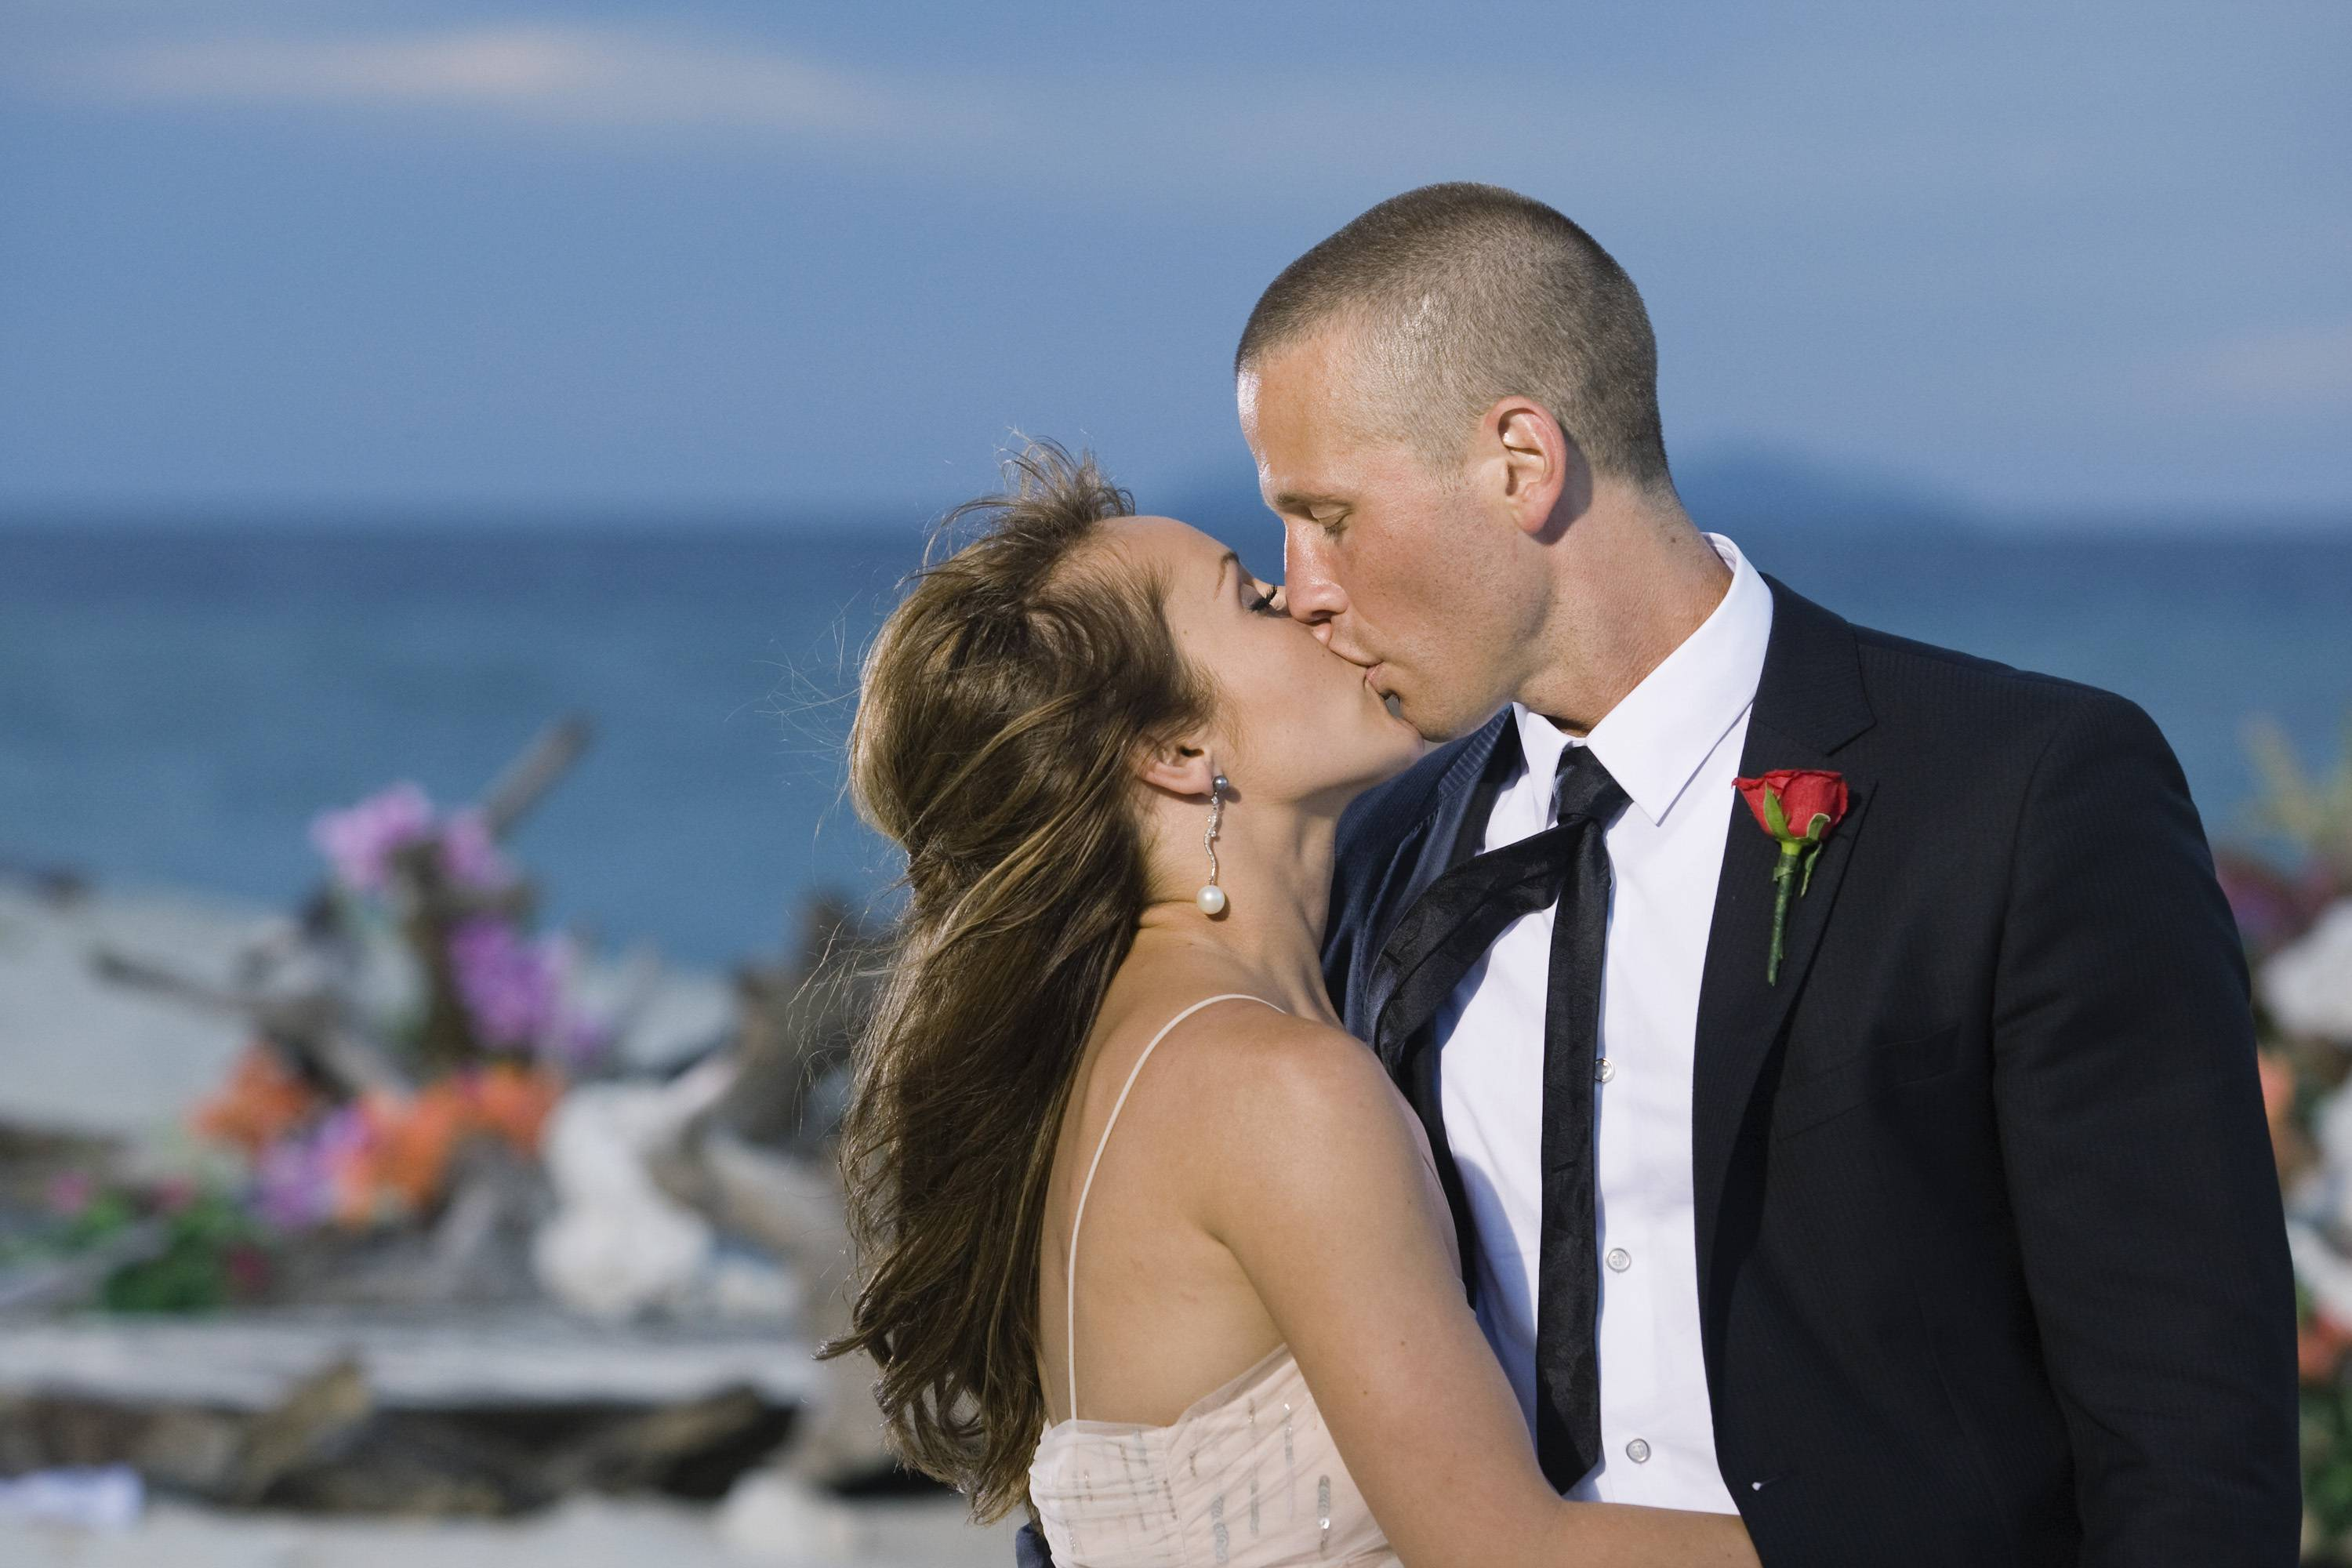 """Bachelorette"" Ashley Hebert kisses J.P. Rosenbaum on the season finale of ""The Bachelorette"" in Fiji. Hebert chose the 34-year-old construction manager over winemaker Ben Flajnik in Monday's two-hour finale."